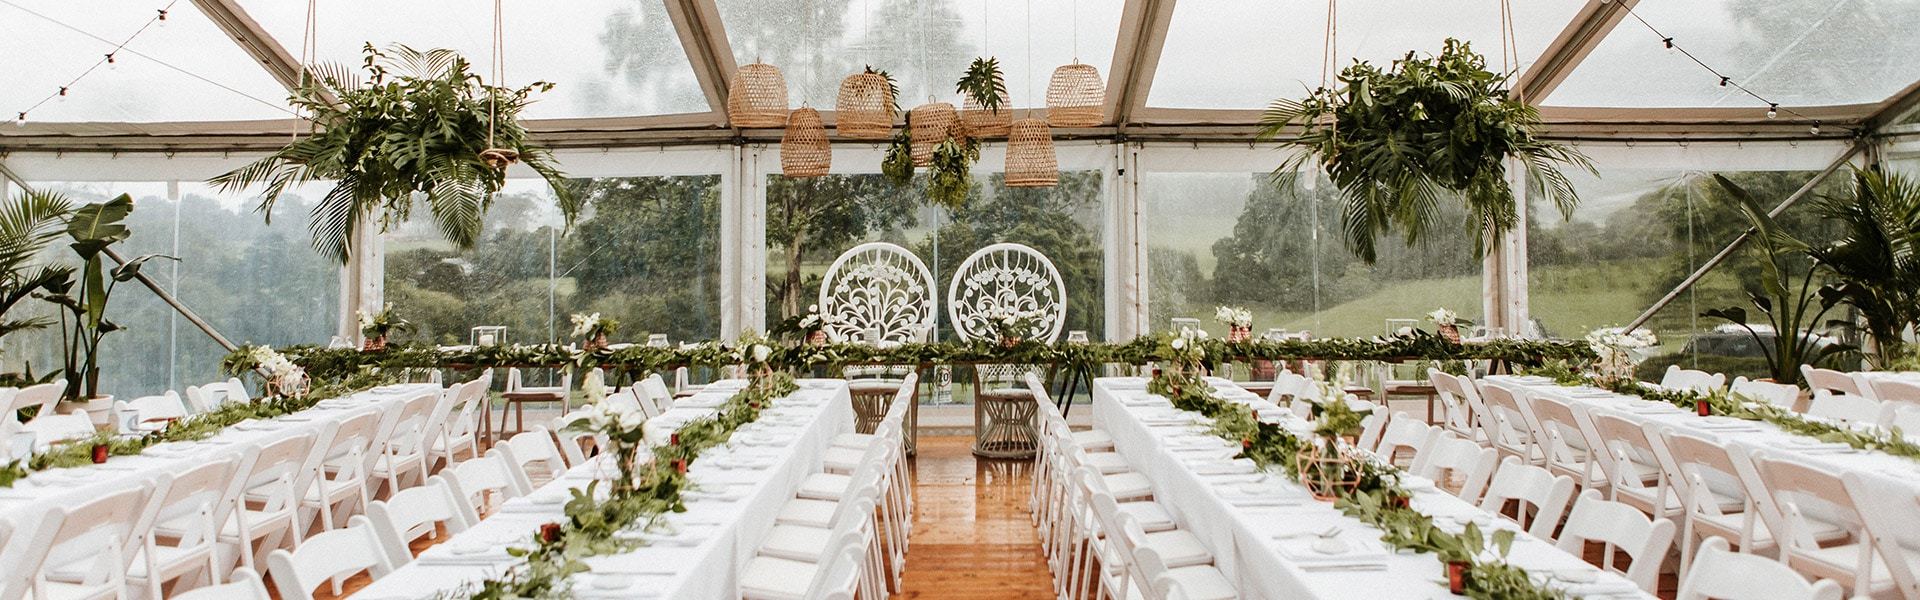 Wedding Hire Wollongong Marquees Pagodas Sperry Tents